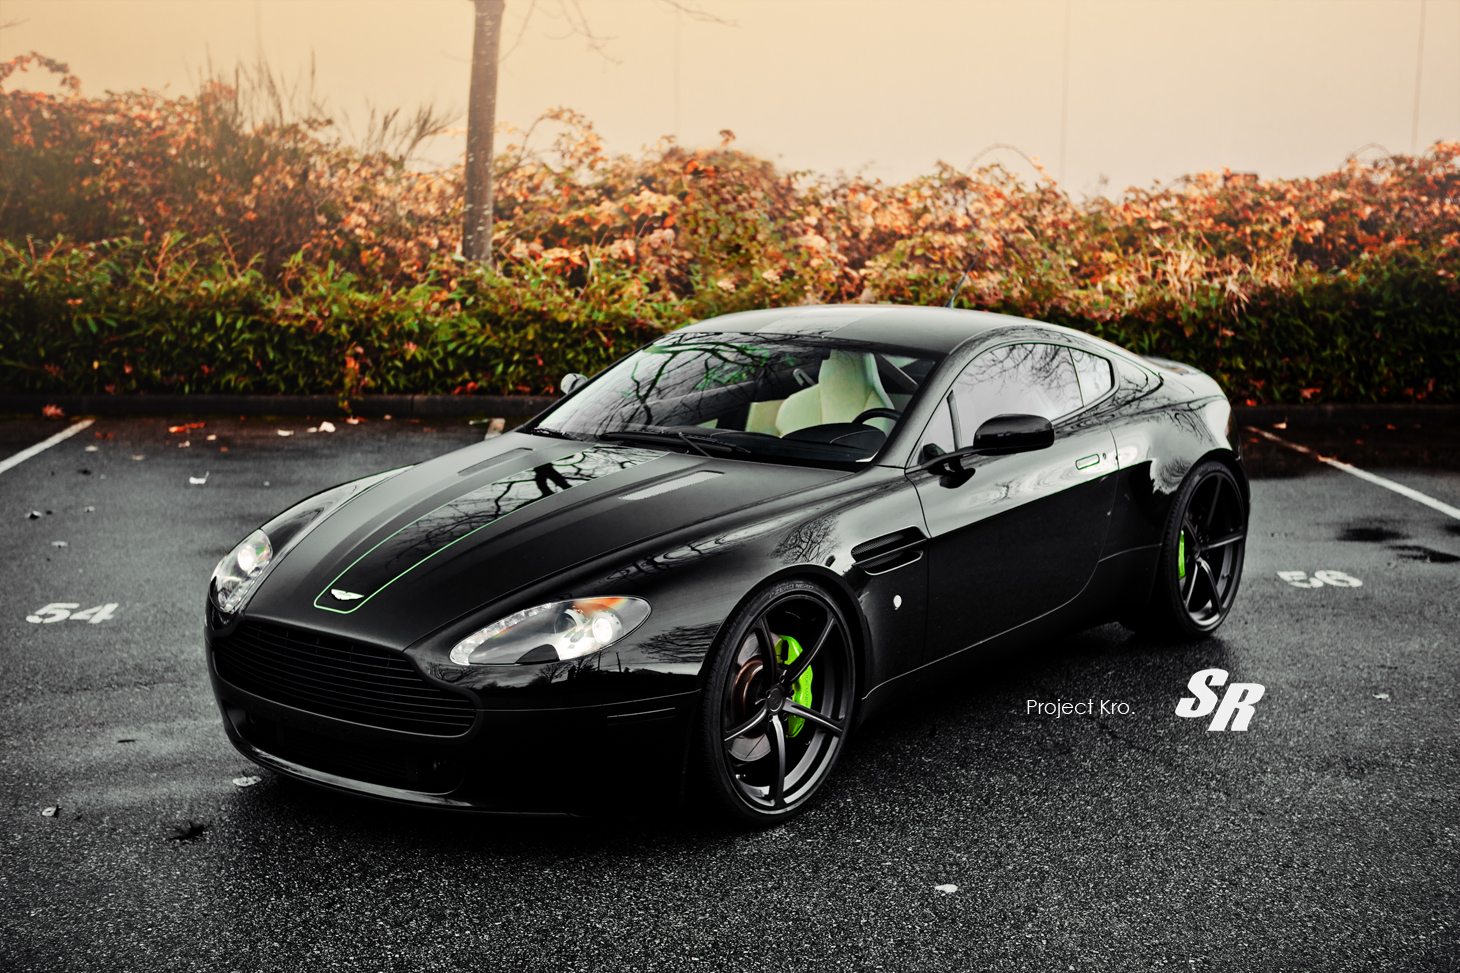 aston martin wallpaper (Aston Martin Vantage)